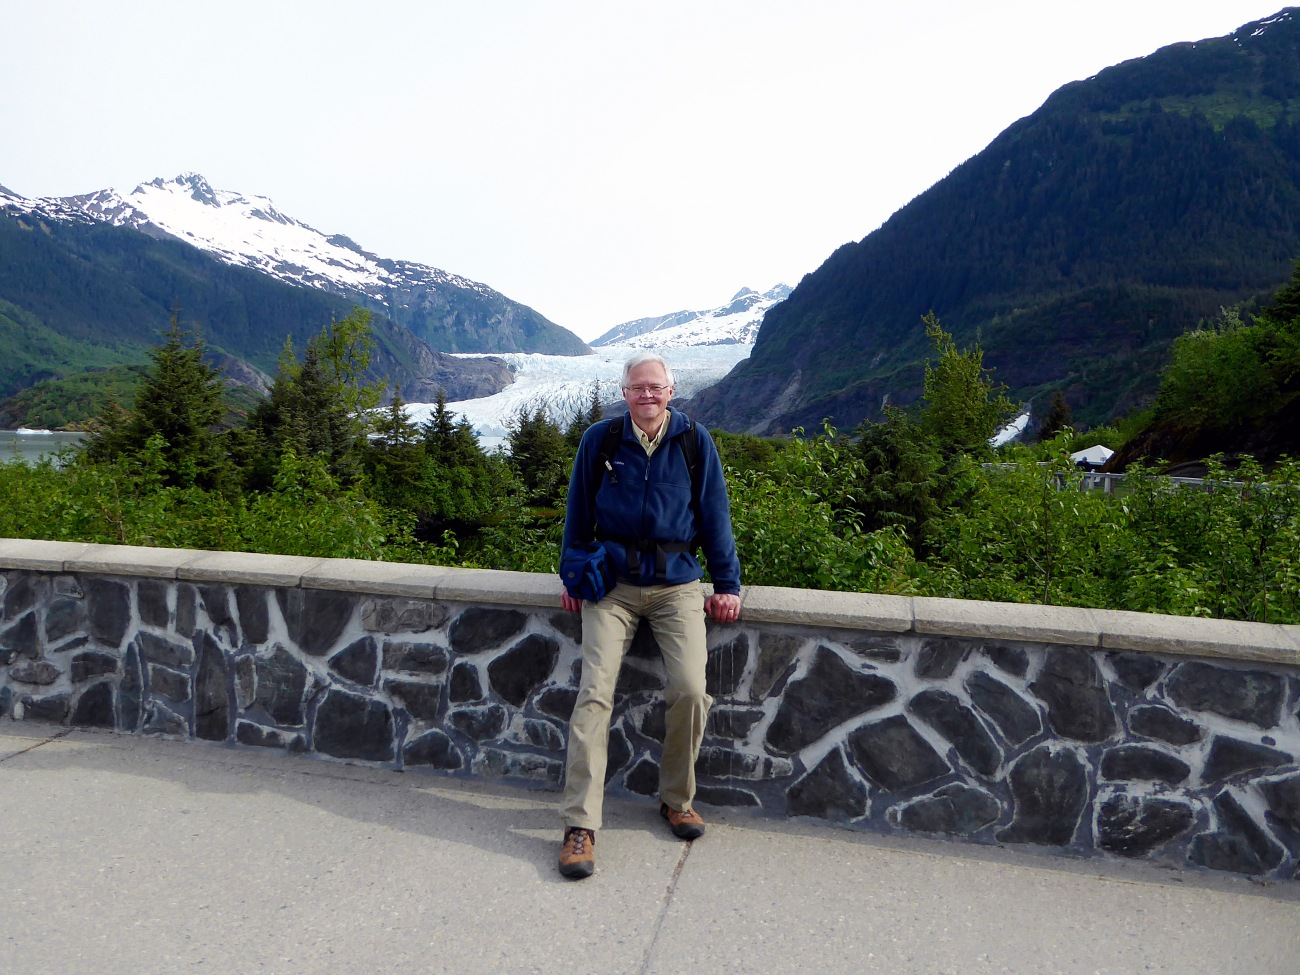 20160520_1257_Randy at Mendenhall Glacier Overlook